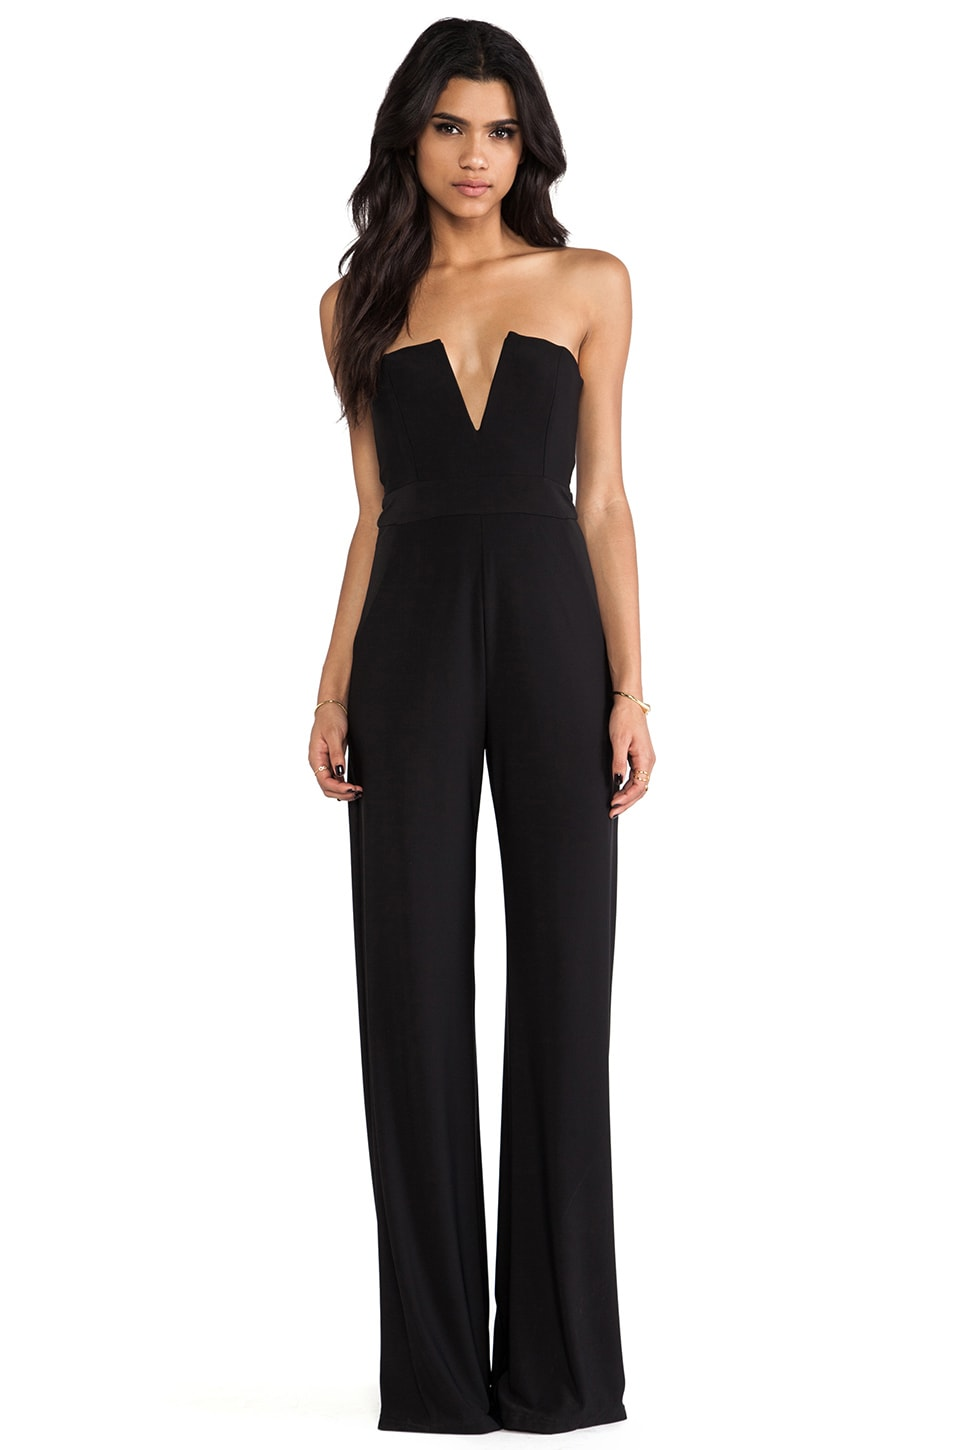 Nookie Dolce Vita V-Front Jumpsuit in Black